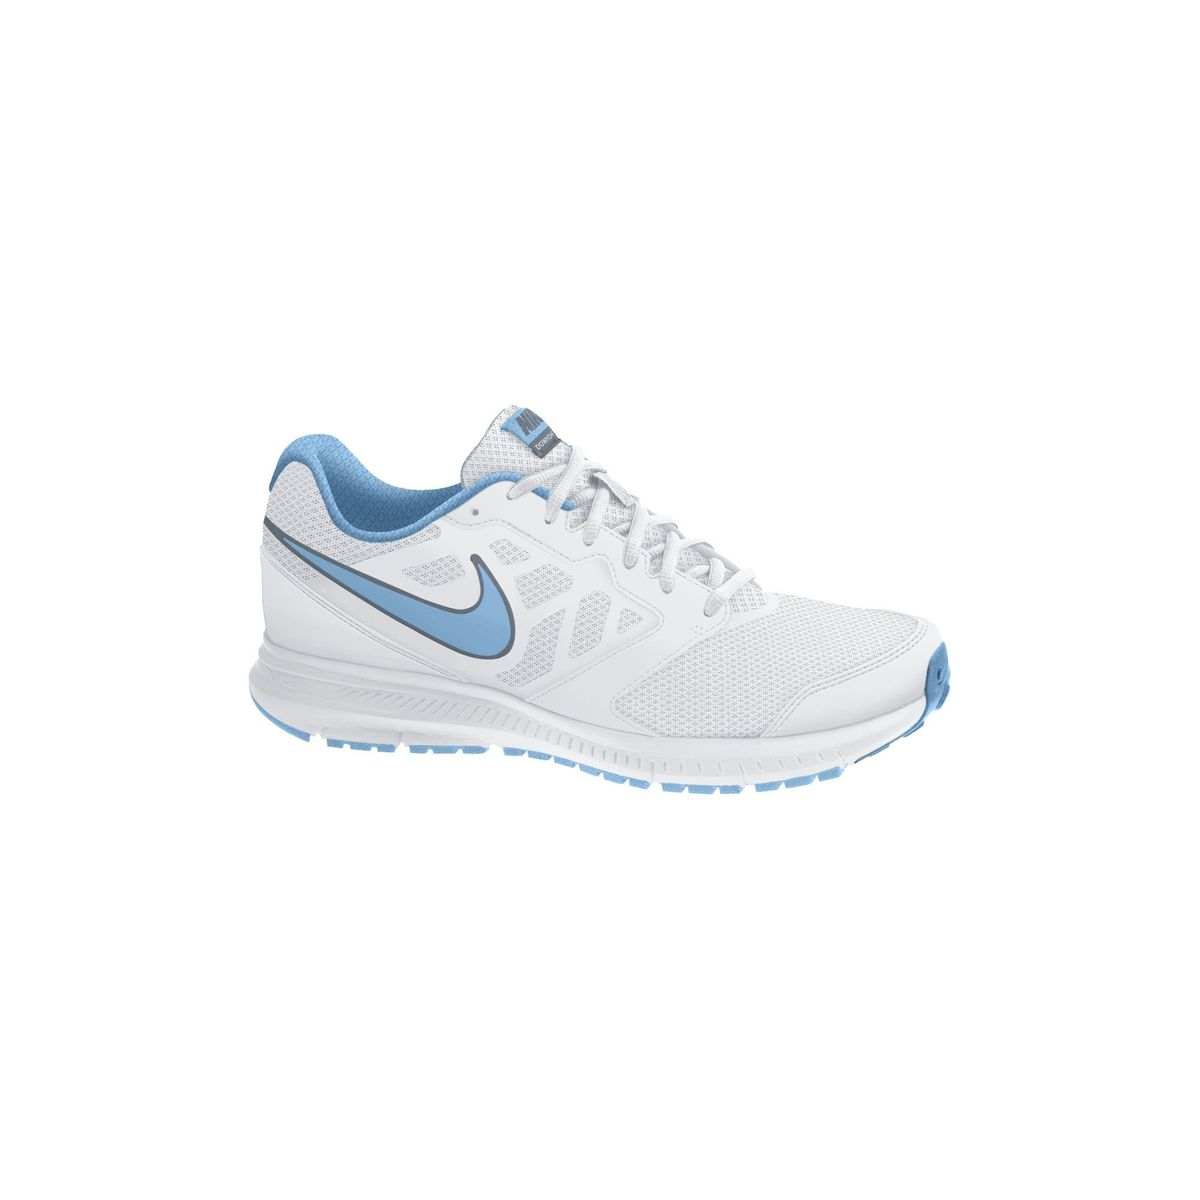 Nike Running Shoes South Africa Thehoneycombimaging Co Uk